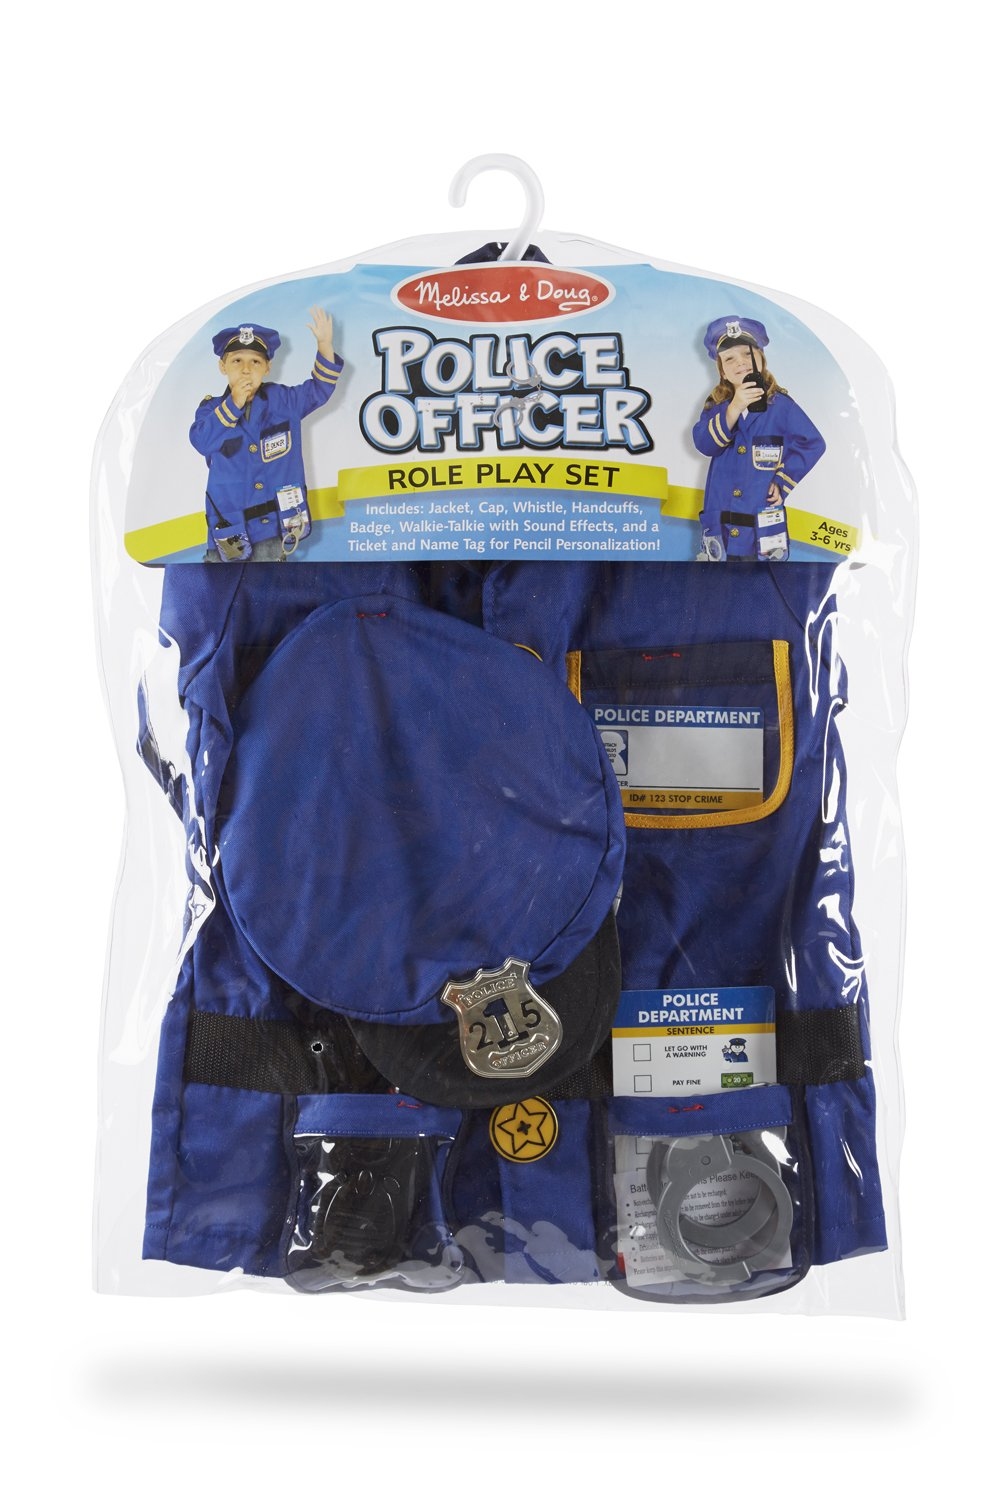 Melissa & Doug Police Officer Role Play Costume Set, Ages 3-6 yrs by Melissa & Doug (Image #1)